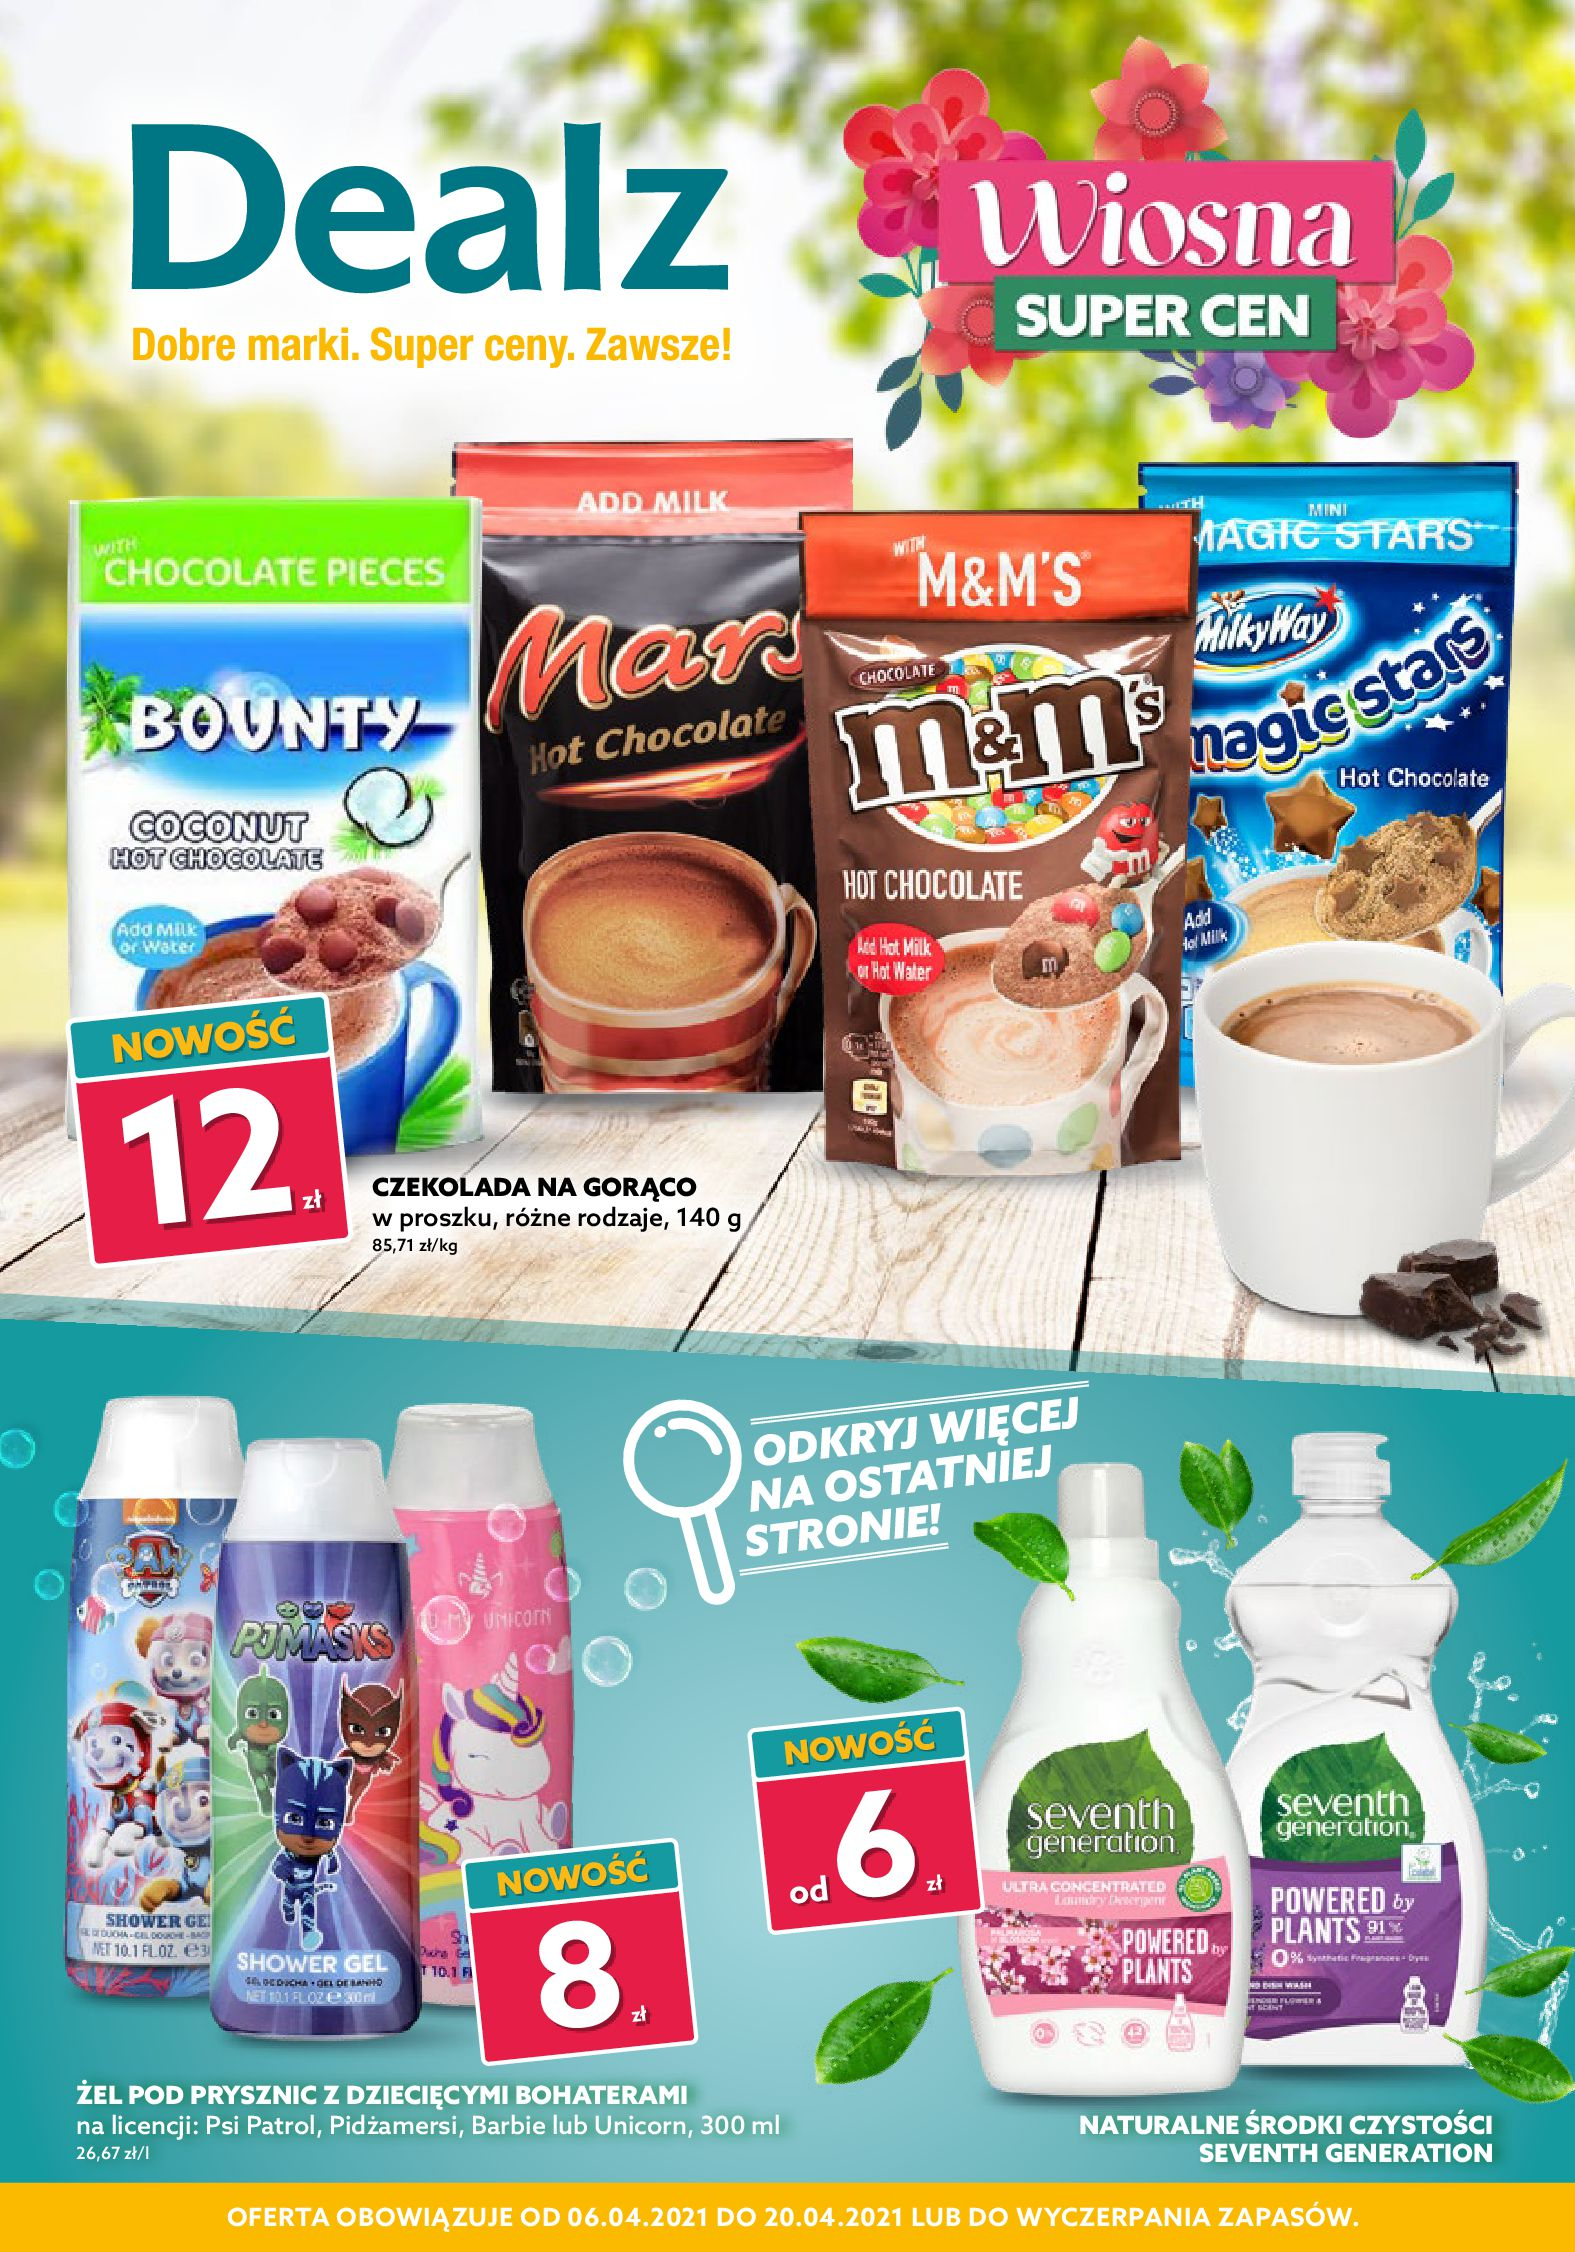 Dealz :  Gazetka Wiosna Super Cen 04.04.2021